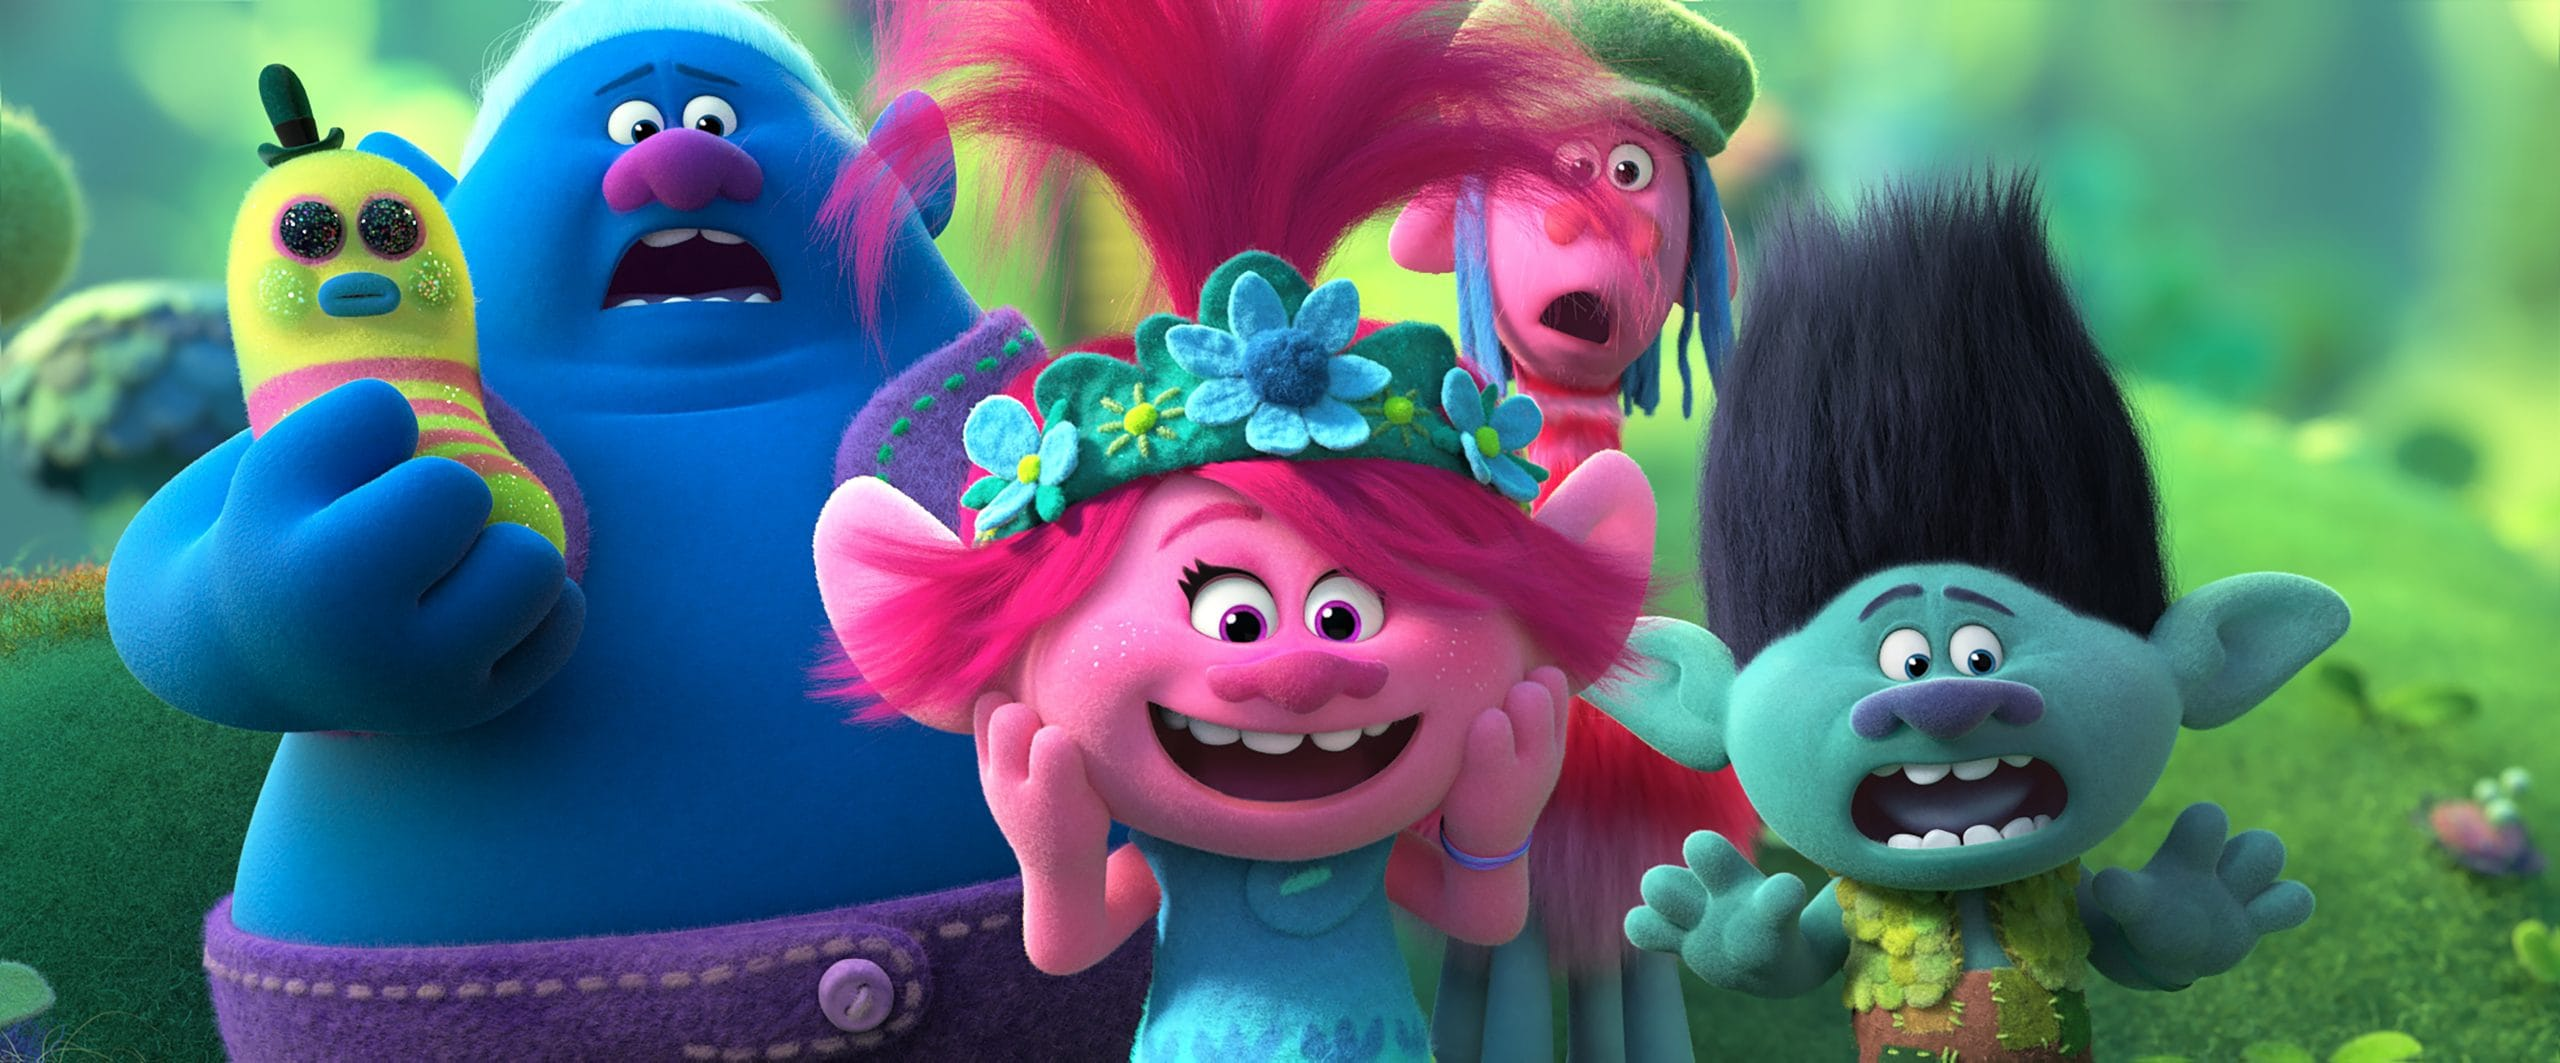 Practical Life Lessons From The Trolls World Tour Characters